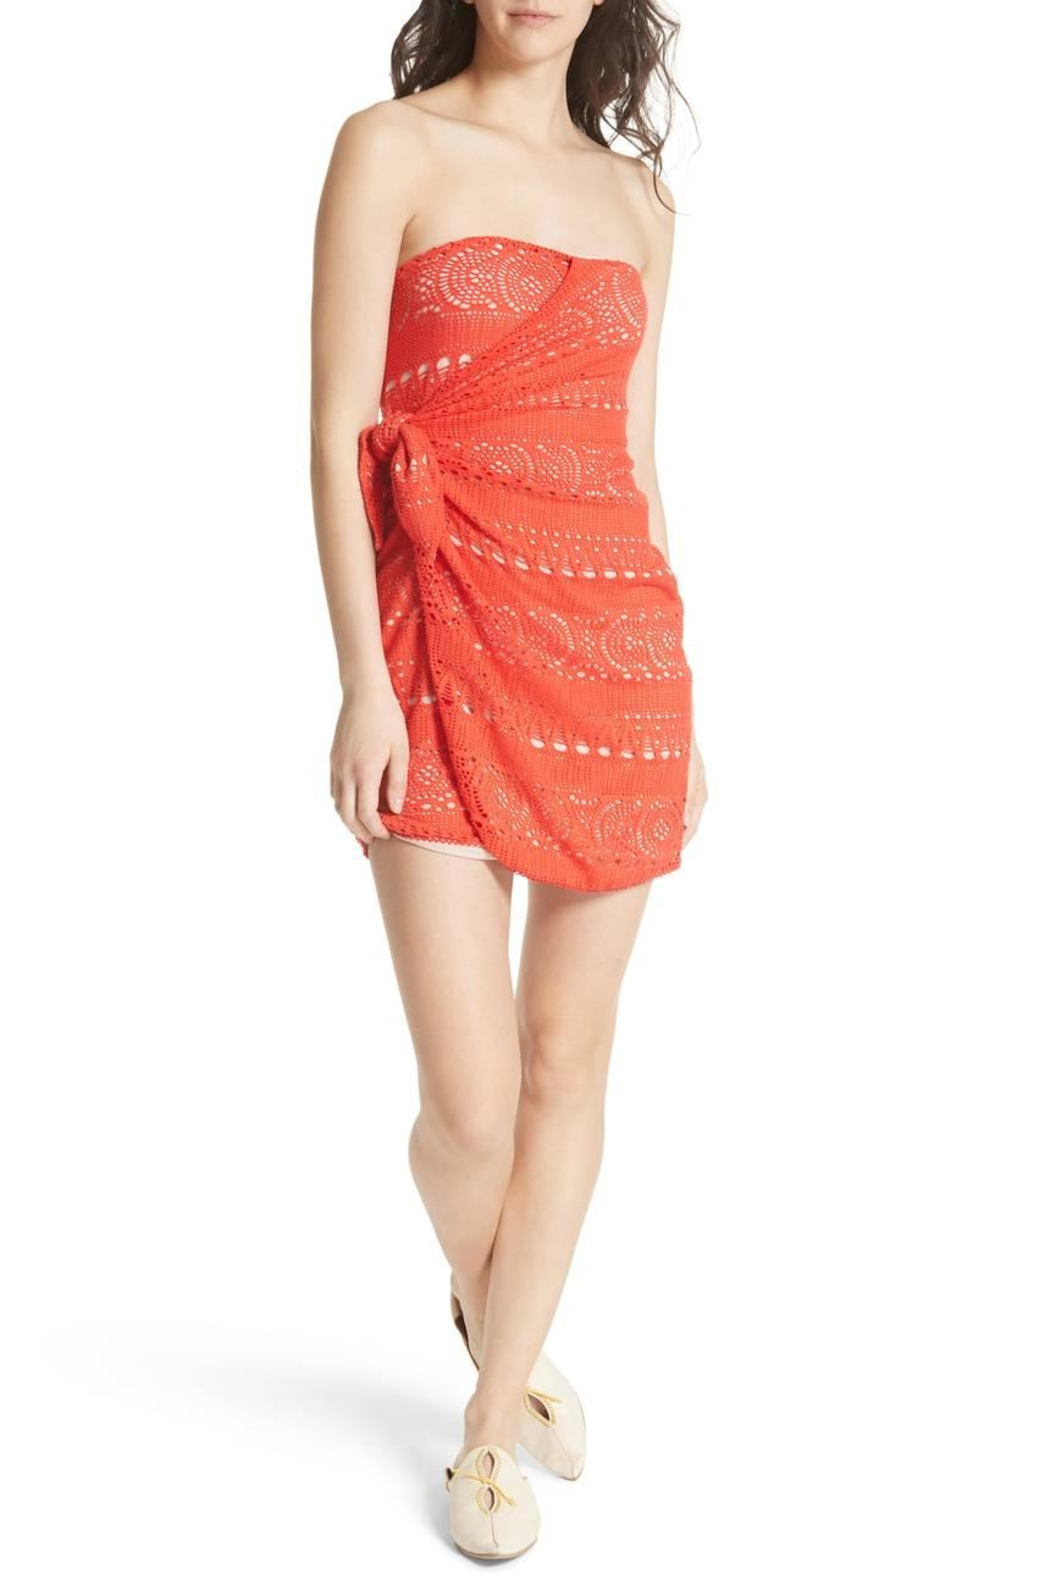 Free People Oceanside Crochet Strapless - Main Image